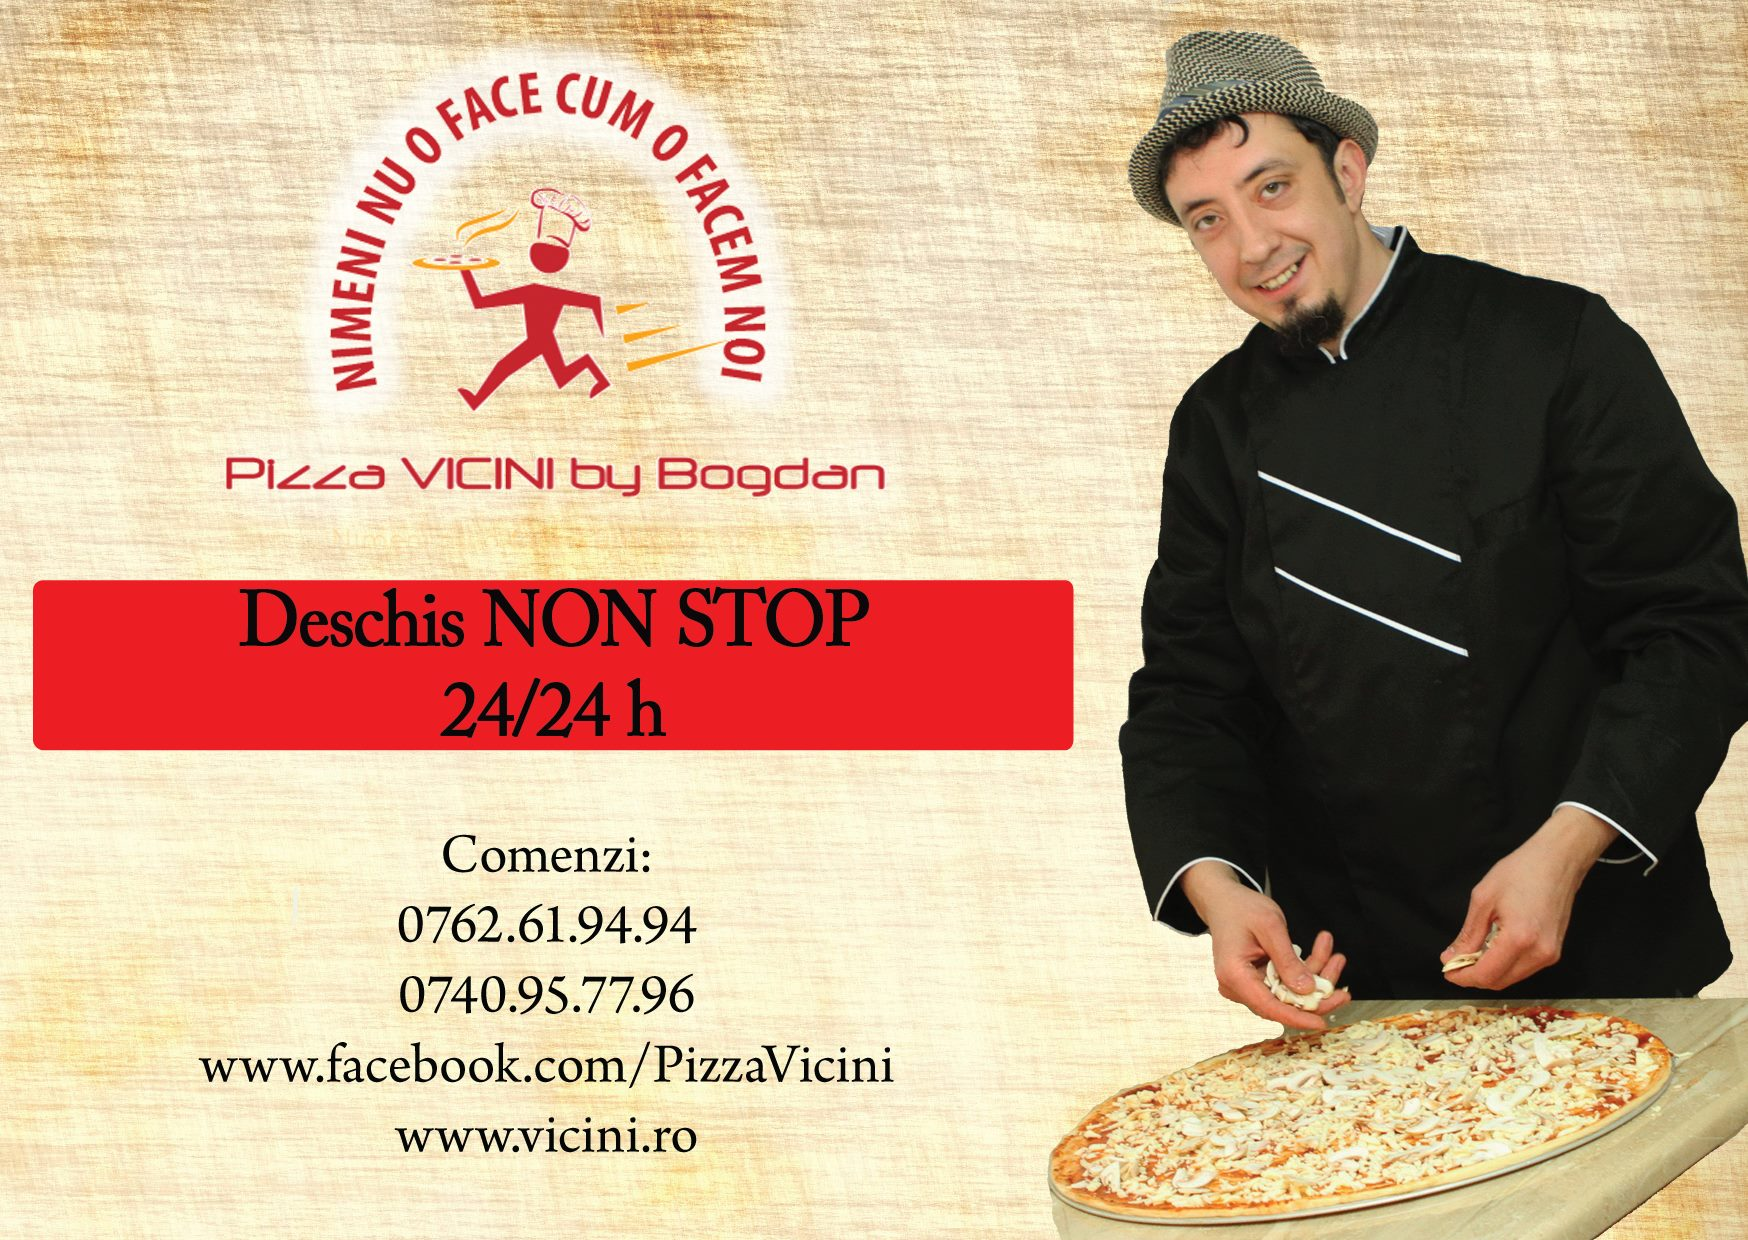 S-a deschis Pizzeria Vicini by Bogdan Roman Masterchef!